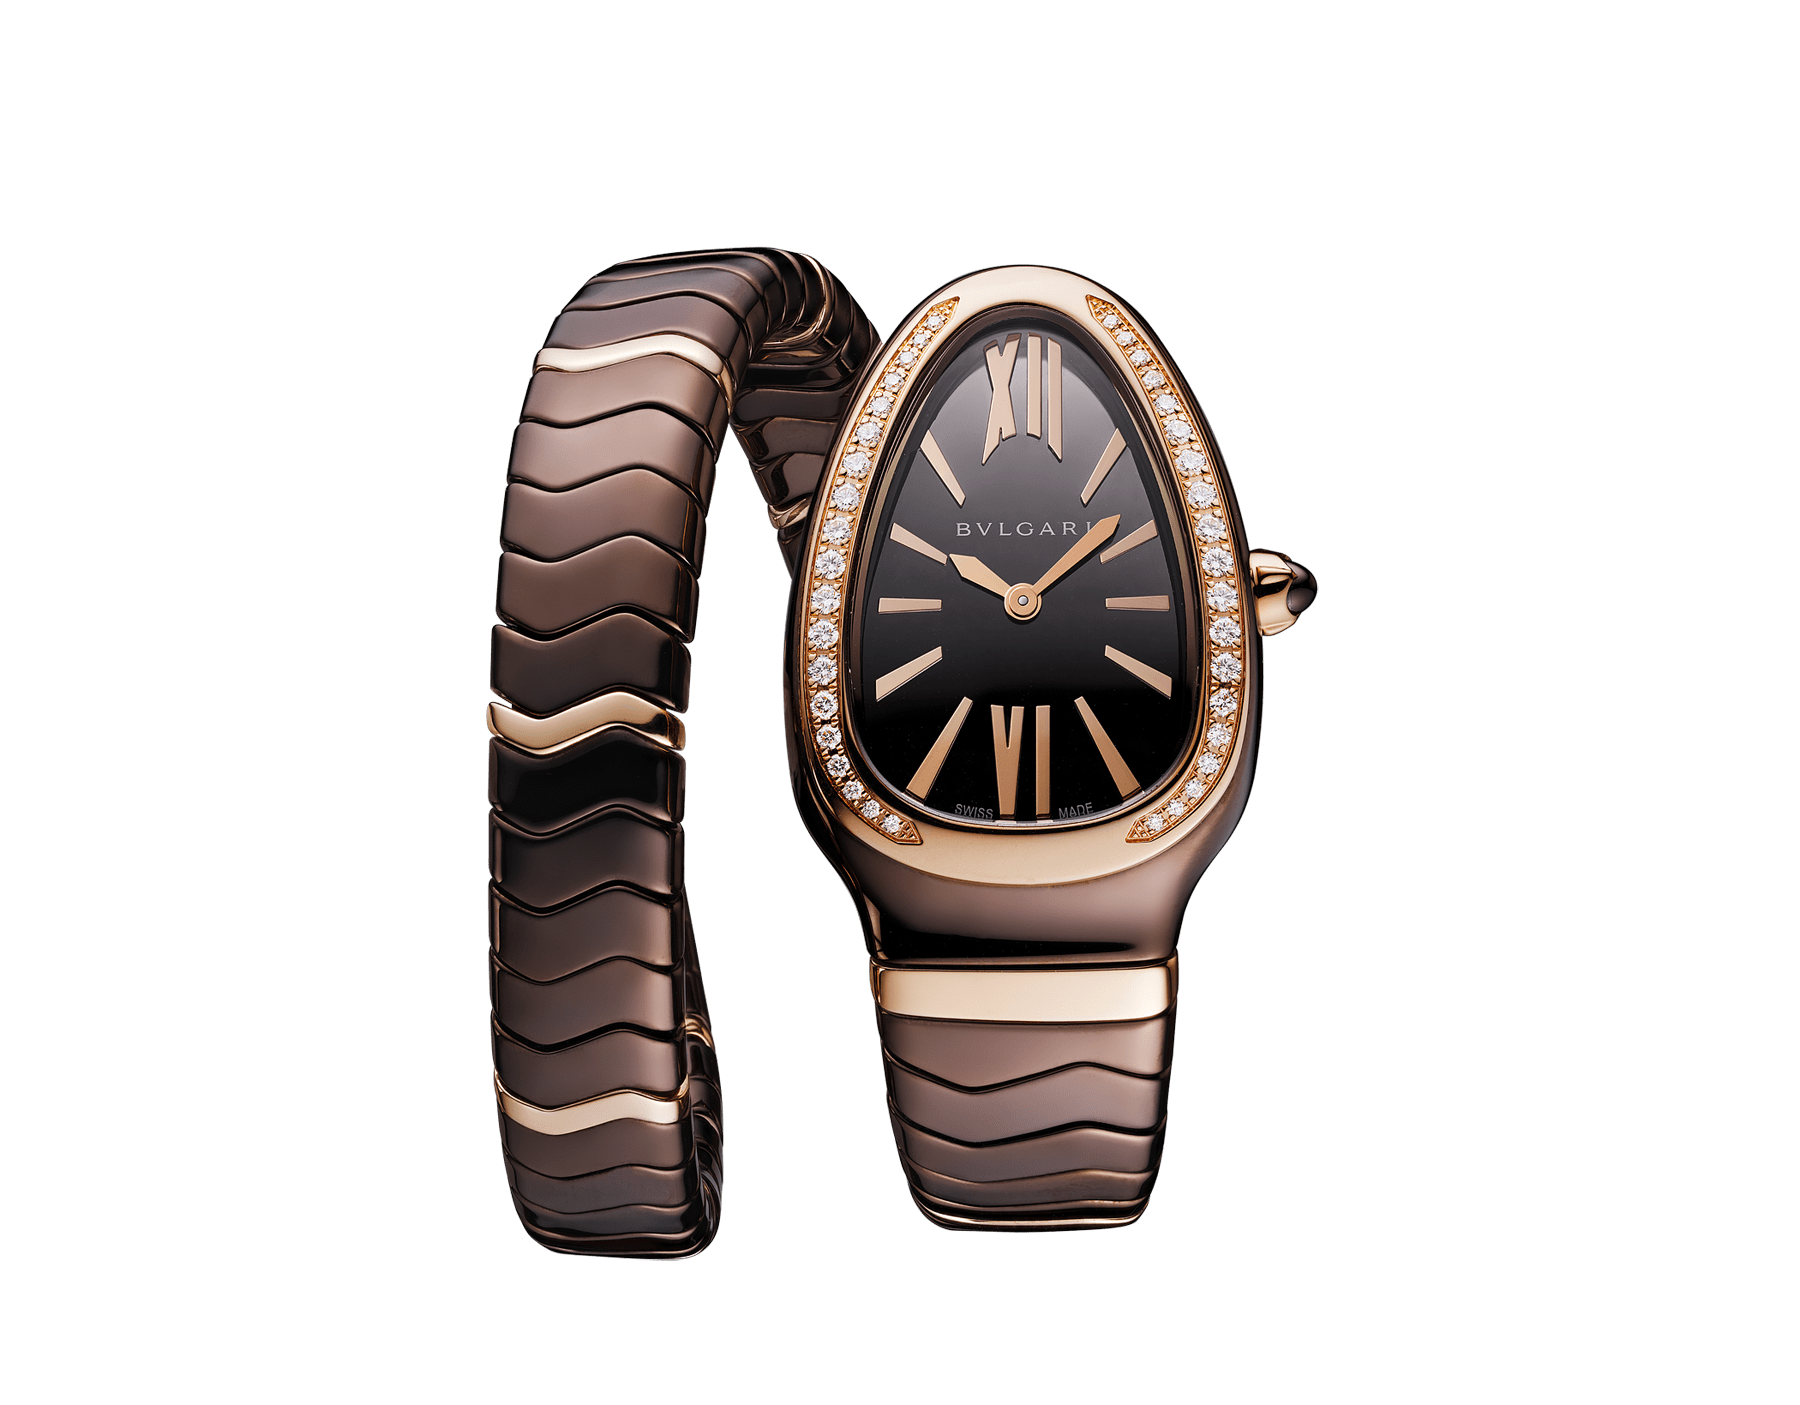 Serpenti Spiga single-spiral watch with treated ceramic case, 18 kt rose gold bezel set with diamonds, brown dial and treated ceramic bracelet with 18 kt rose gold elements 103060 image 1